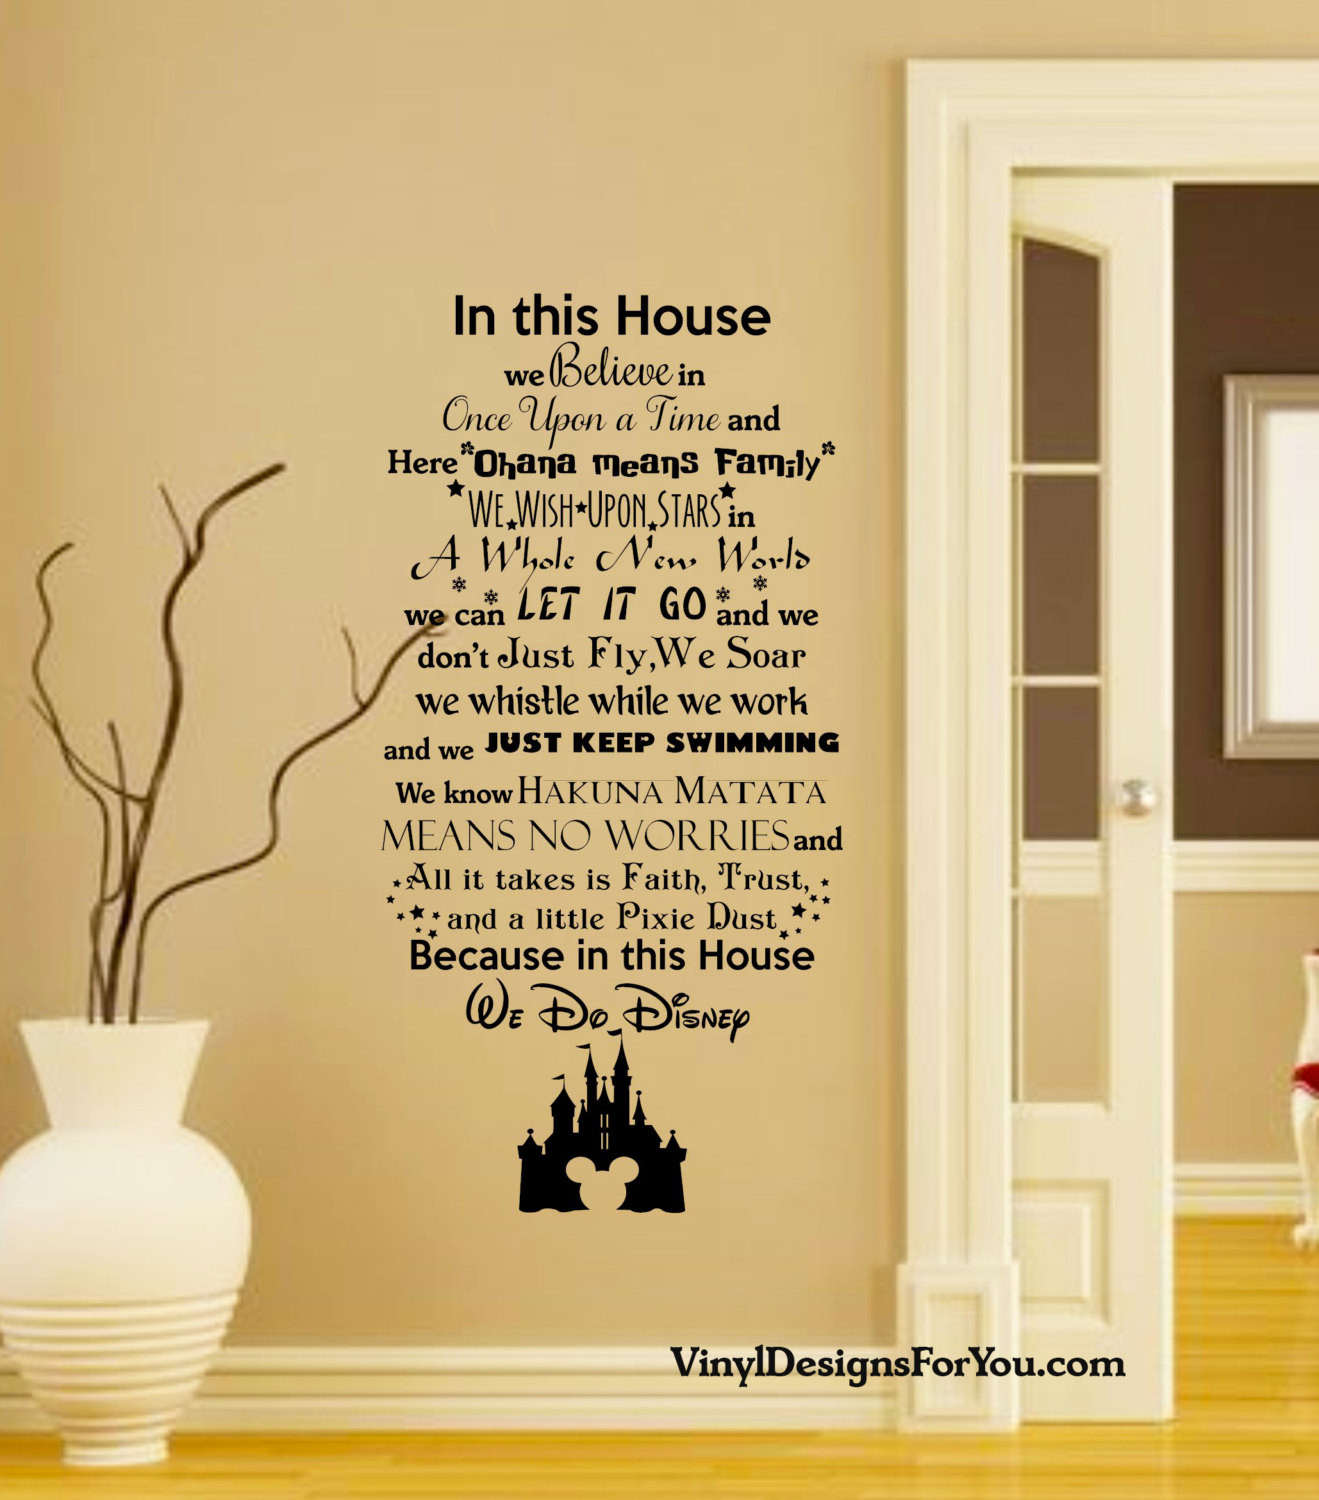 Best ideas about Disney Wall Art . Save or Pin In this House We do Disney Wall Decal with Mickey Mouse Now.